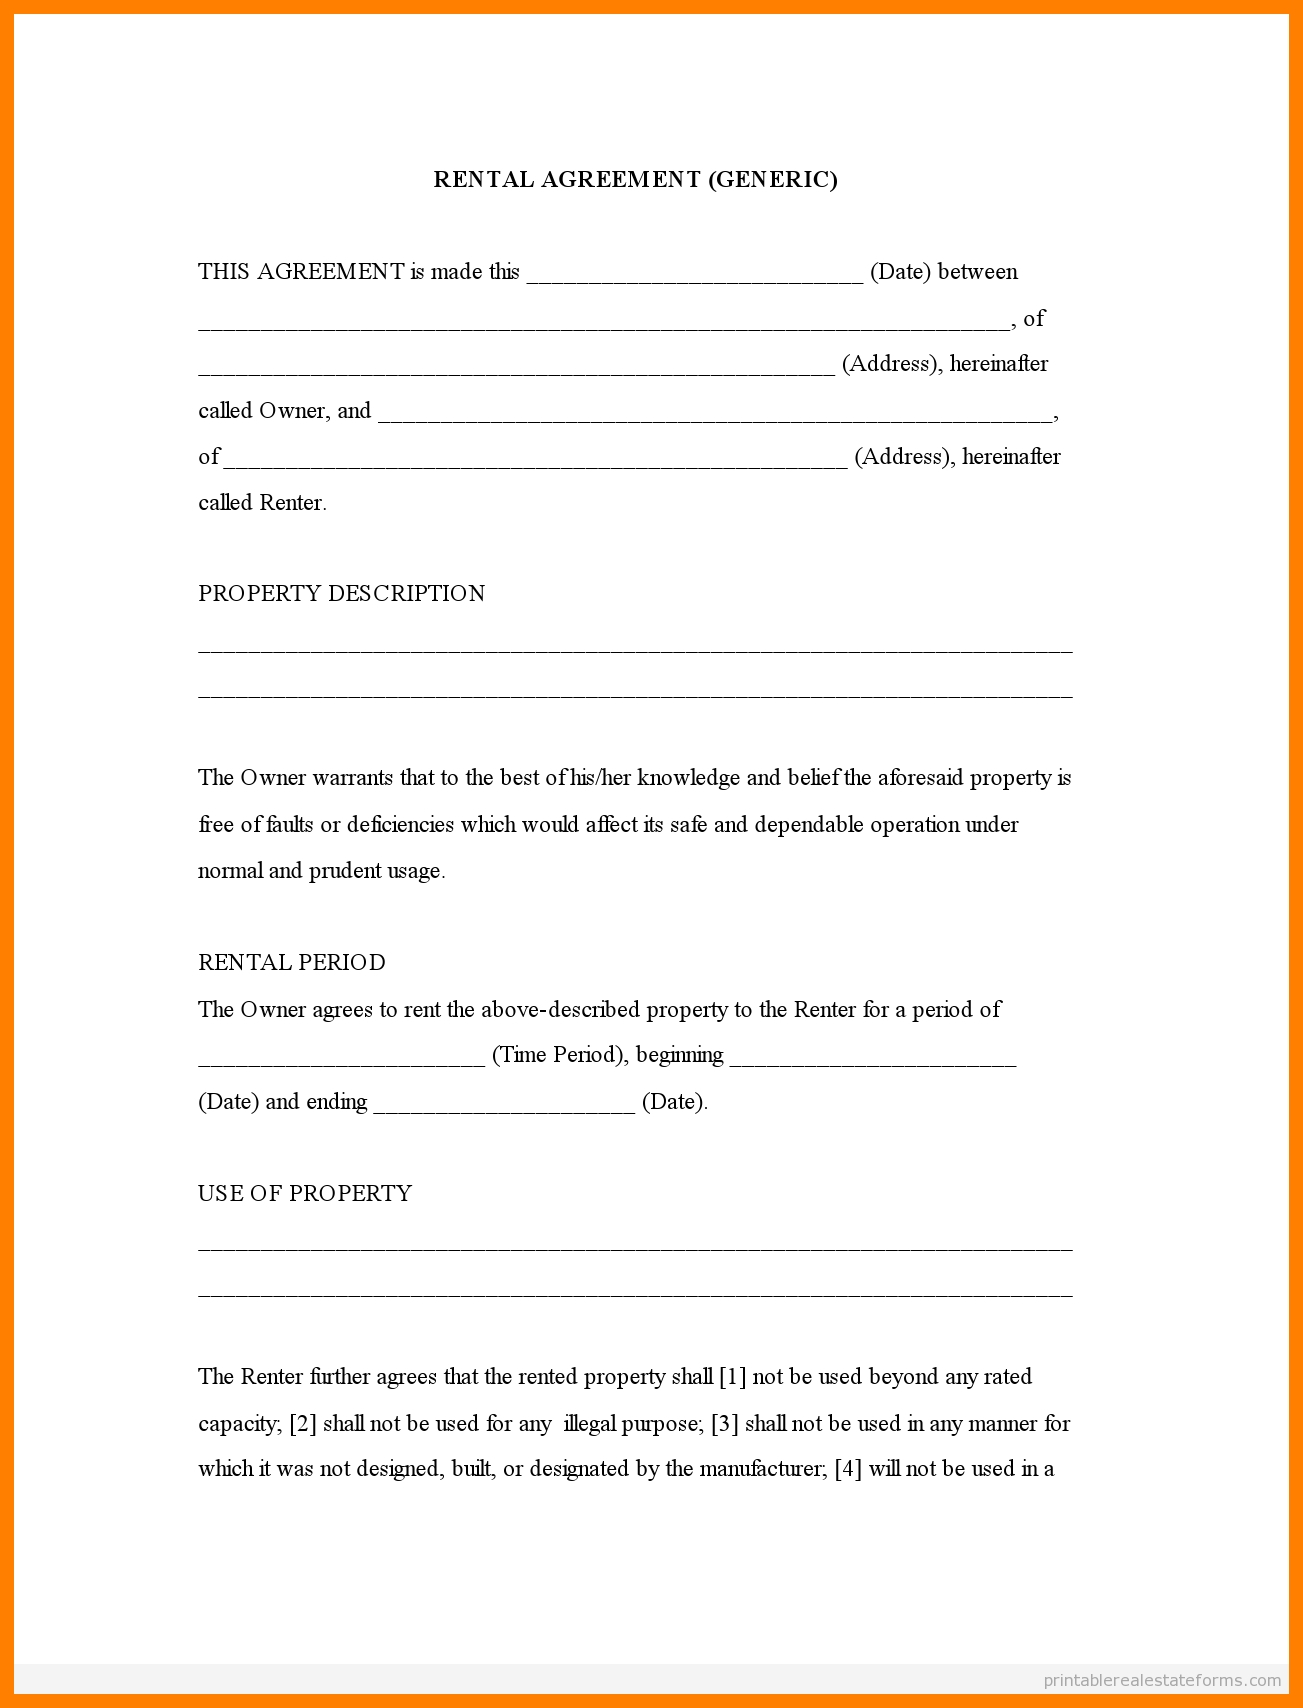 Free Printable Rental Agreement Forms | Bestprintable231118 - Free Printable Rental Agreement